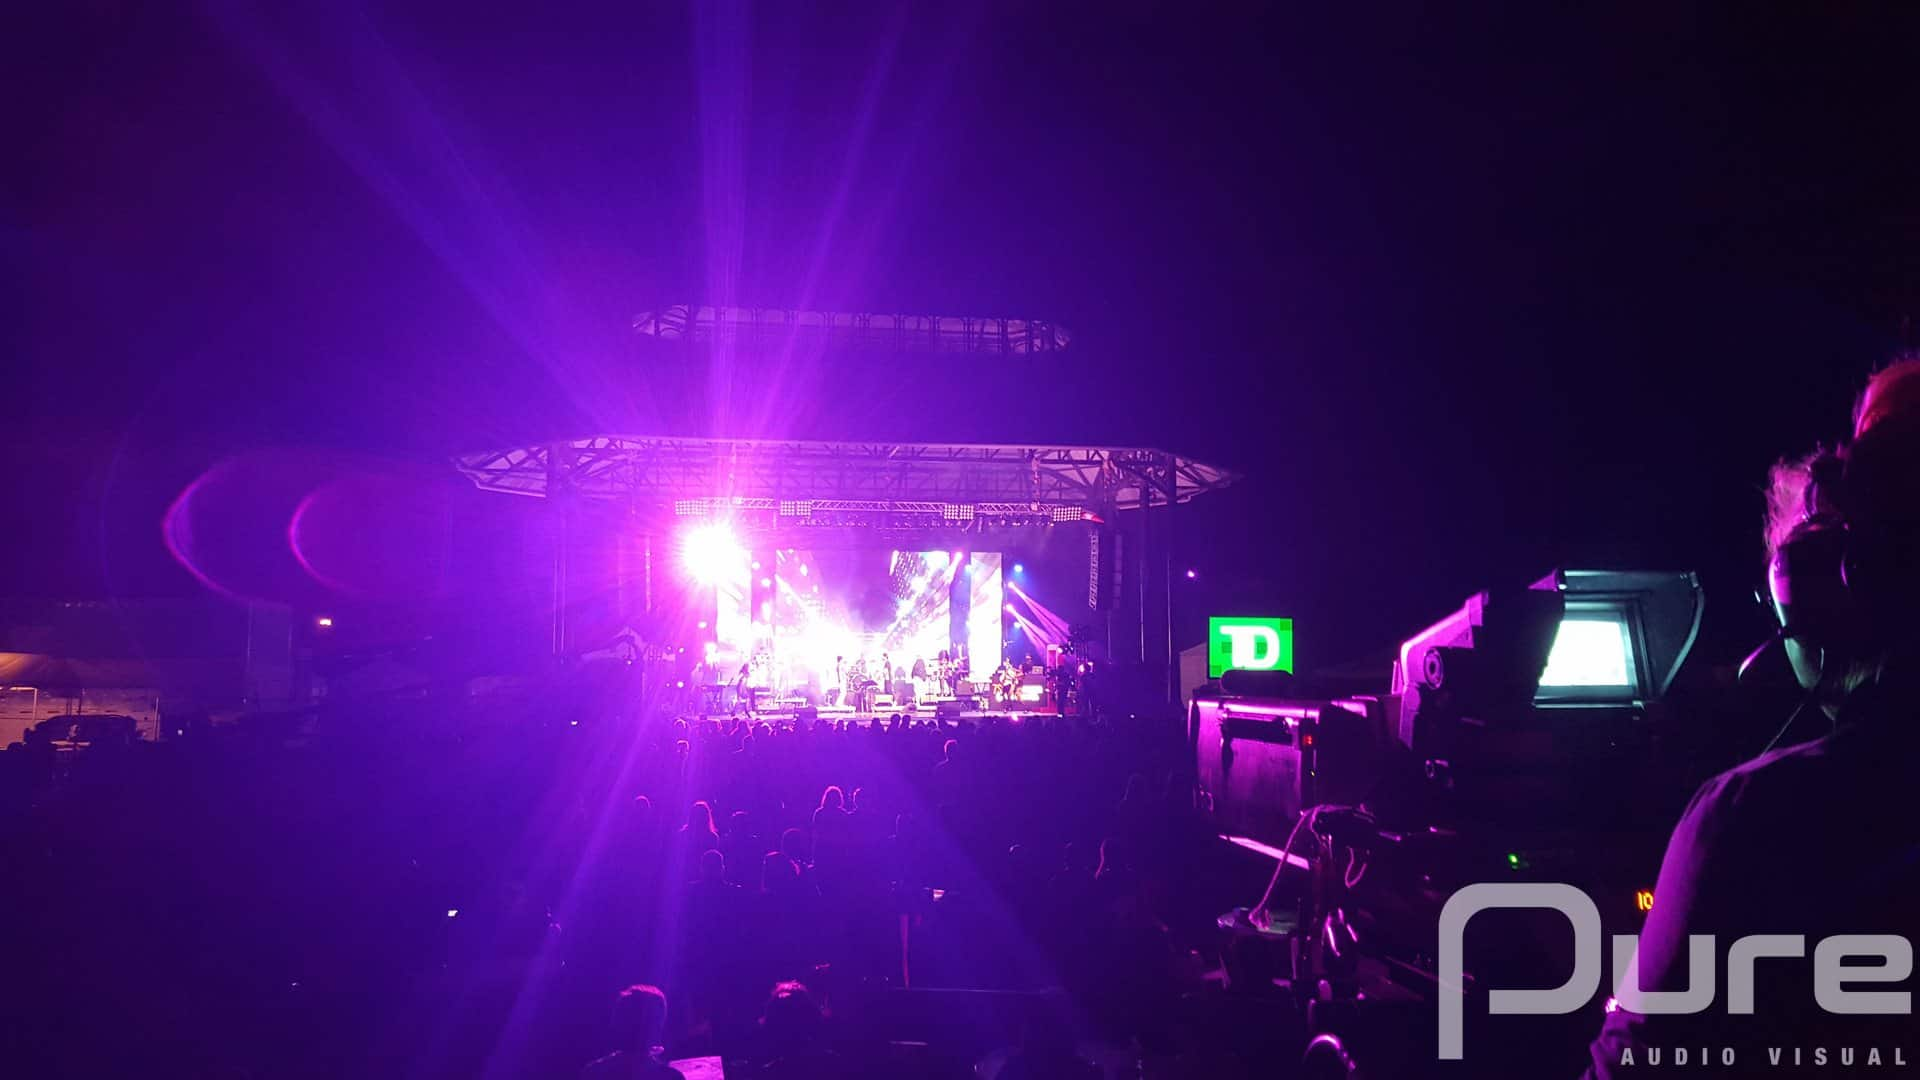 An outdoor concert with an LED video wall, line array, and moving heads